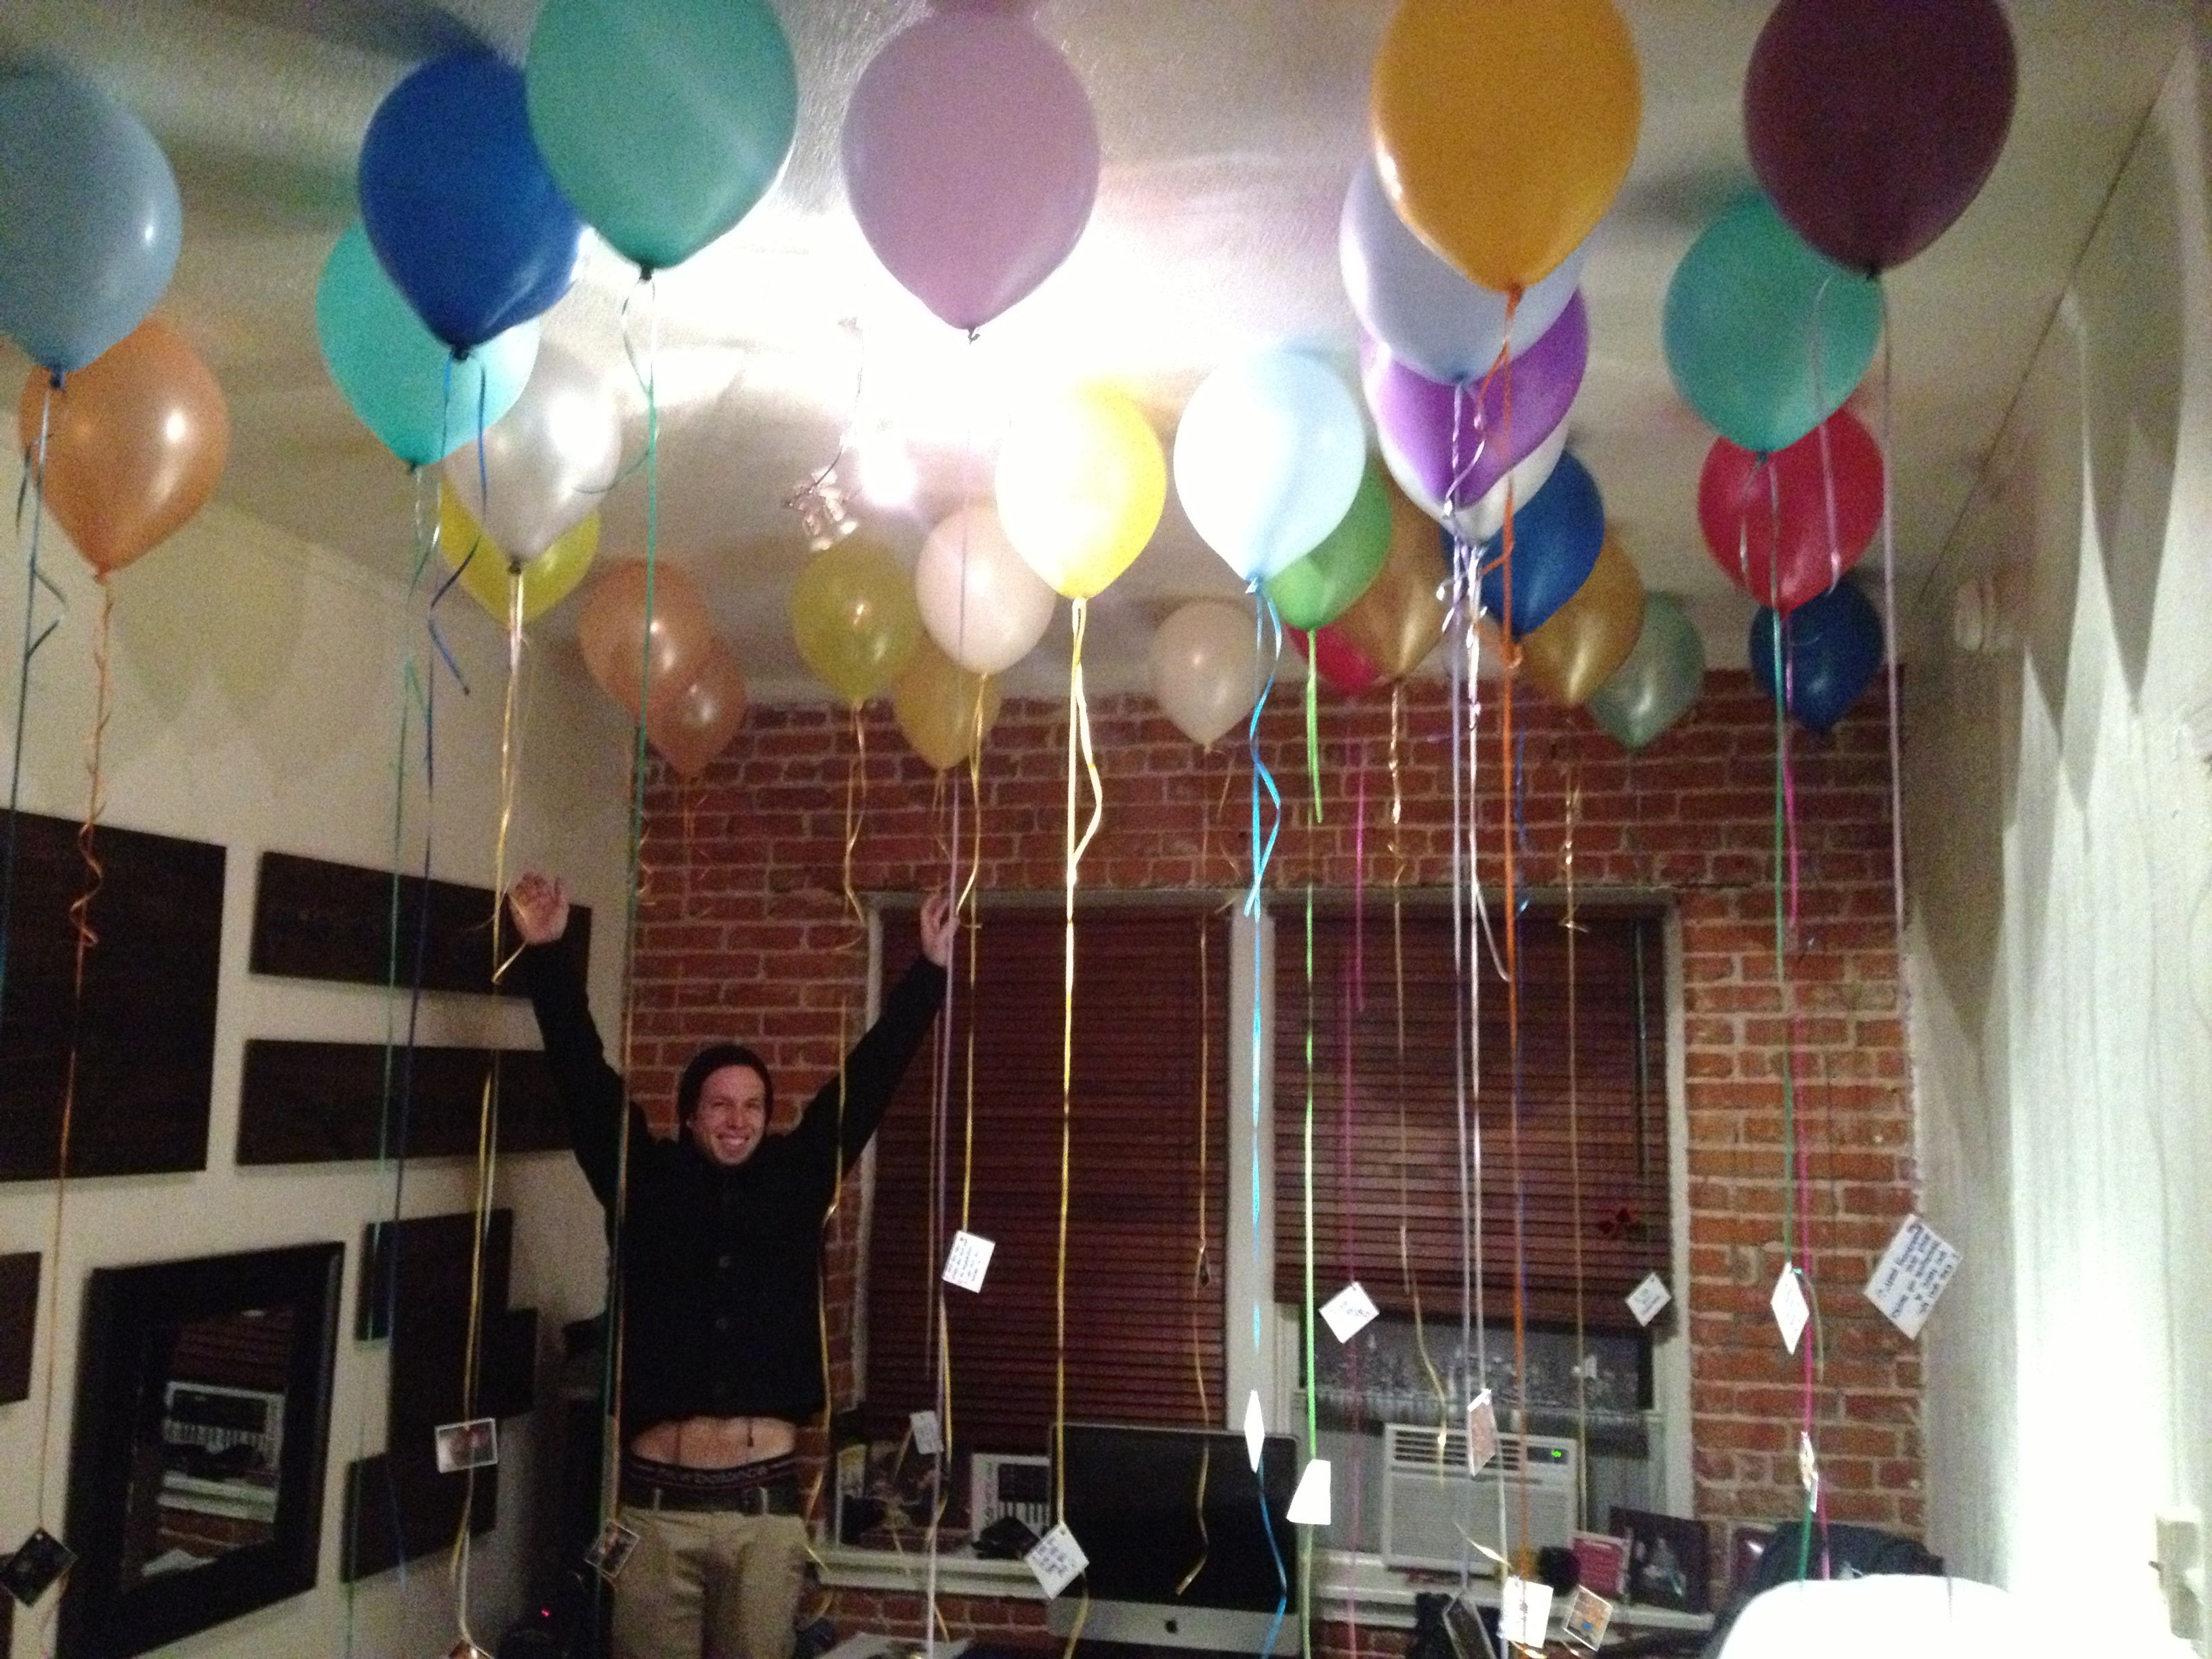 surprise birthday! for my boyfriend 26th birthday i filled his room